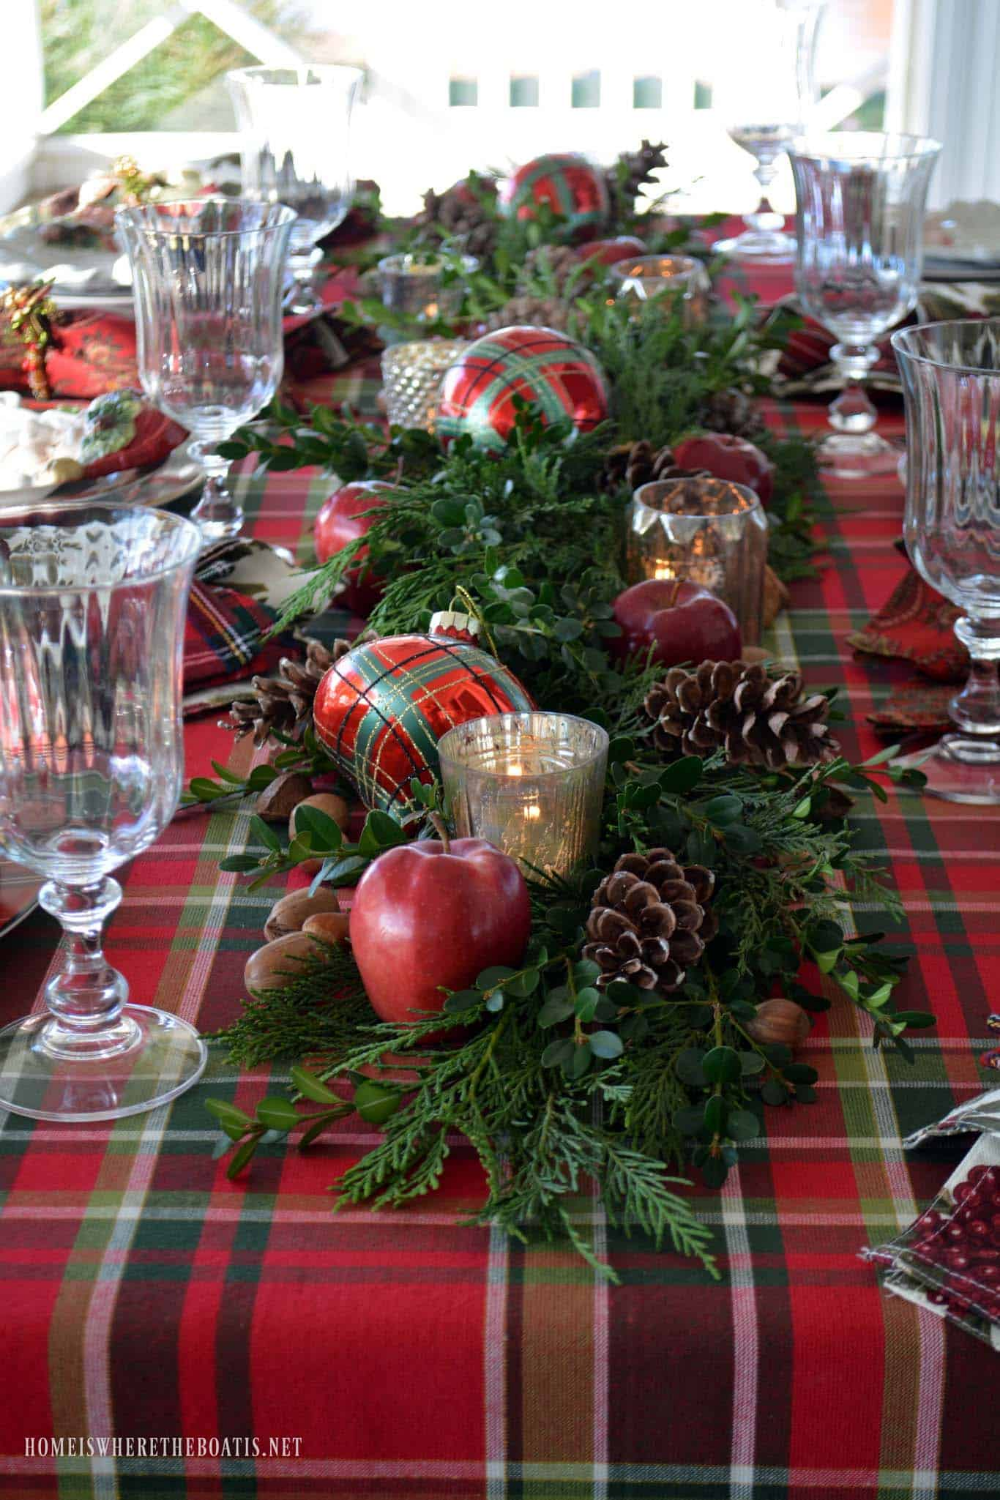 30 Absolutely Stunning Ideas For Christmas Table Decorations Diy Christmas Table Christmas Table Centerpieces Christmas Table Decorations Diy